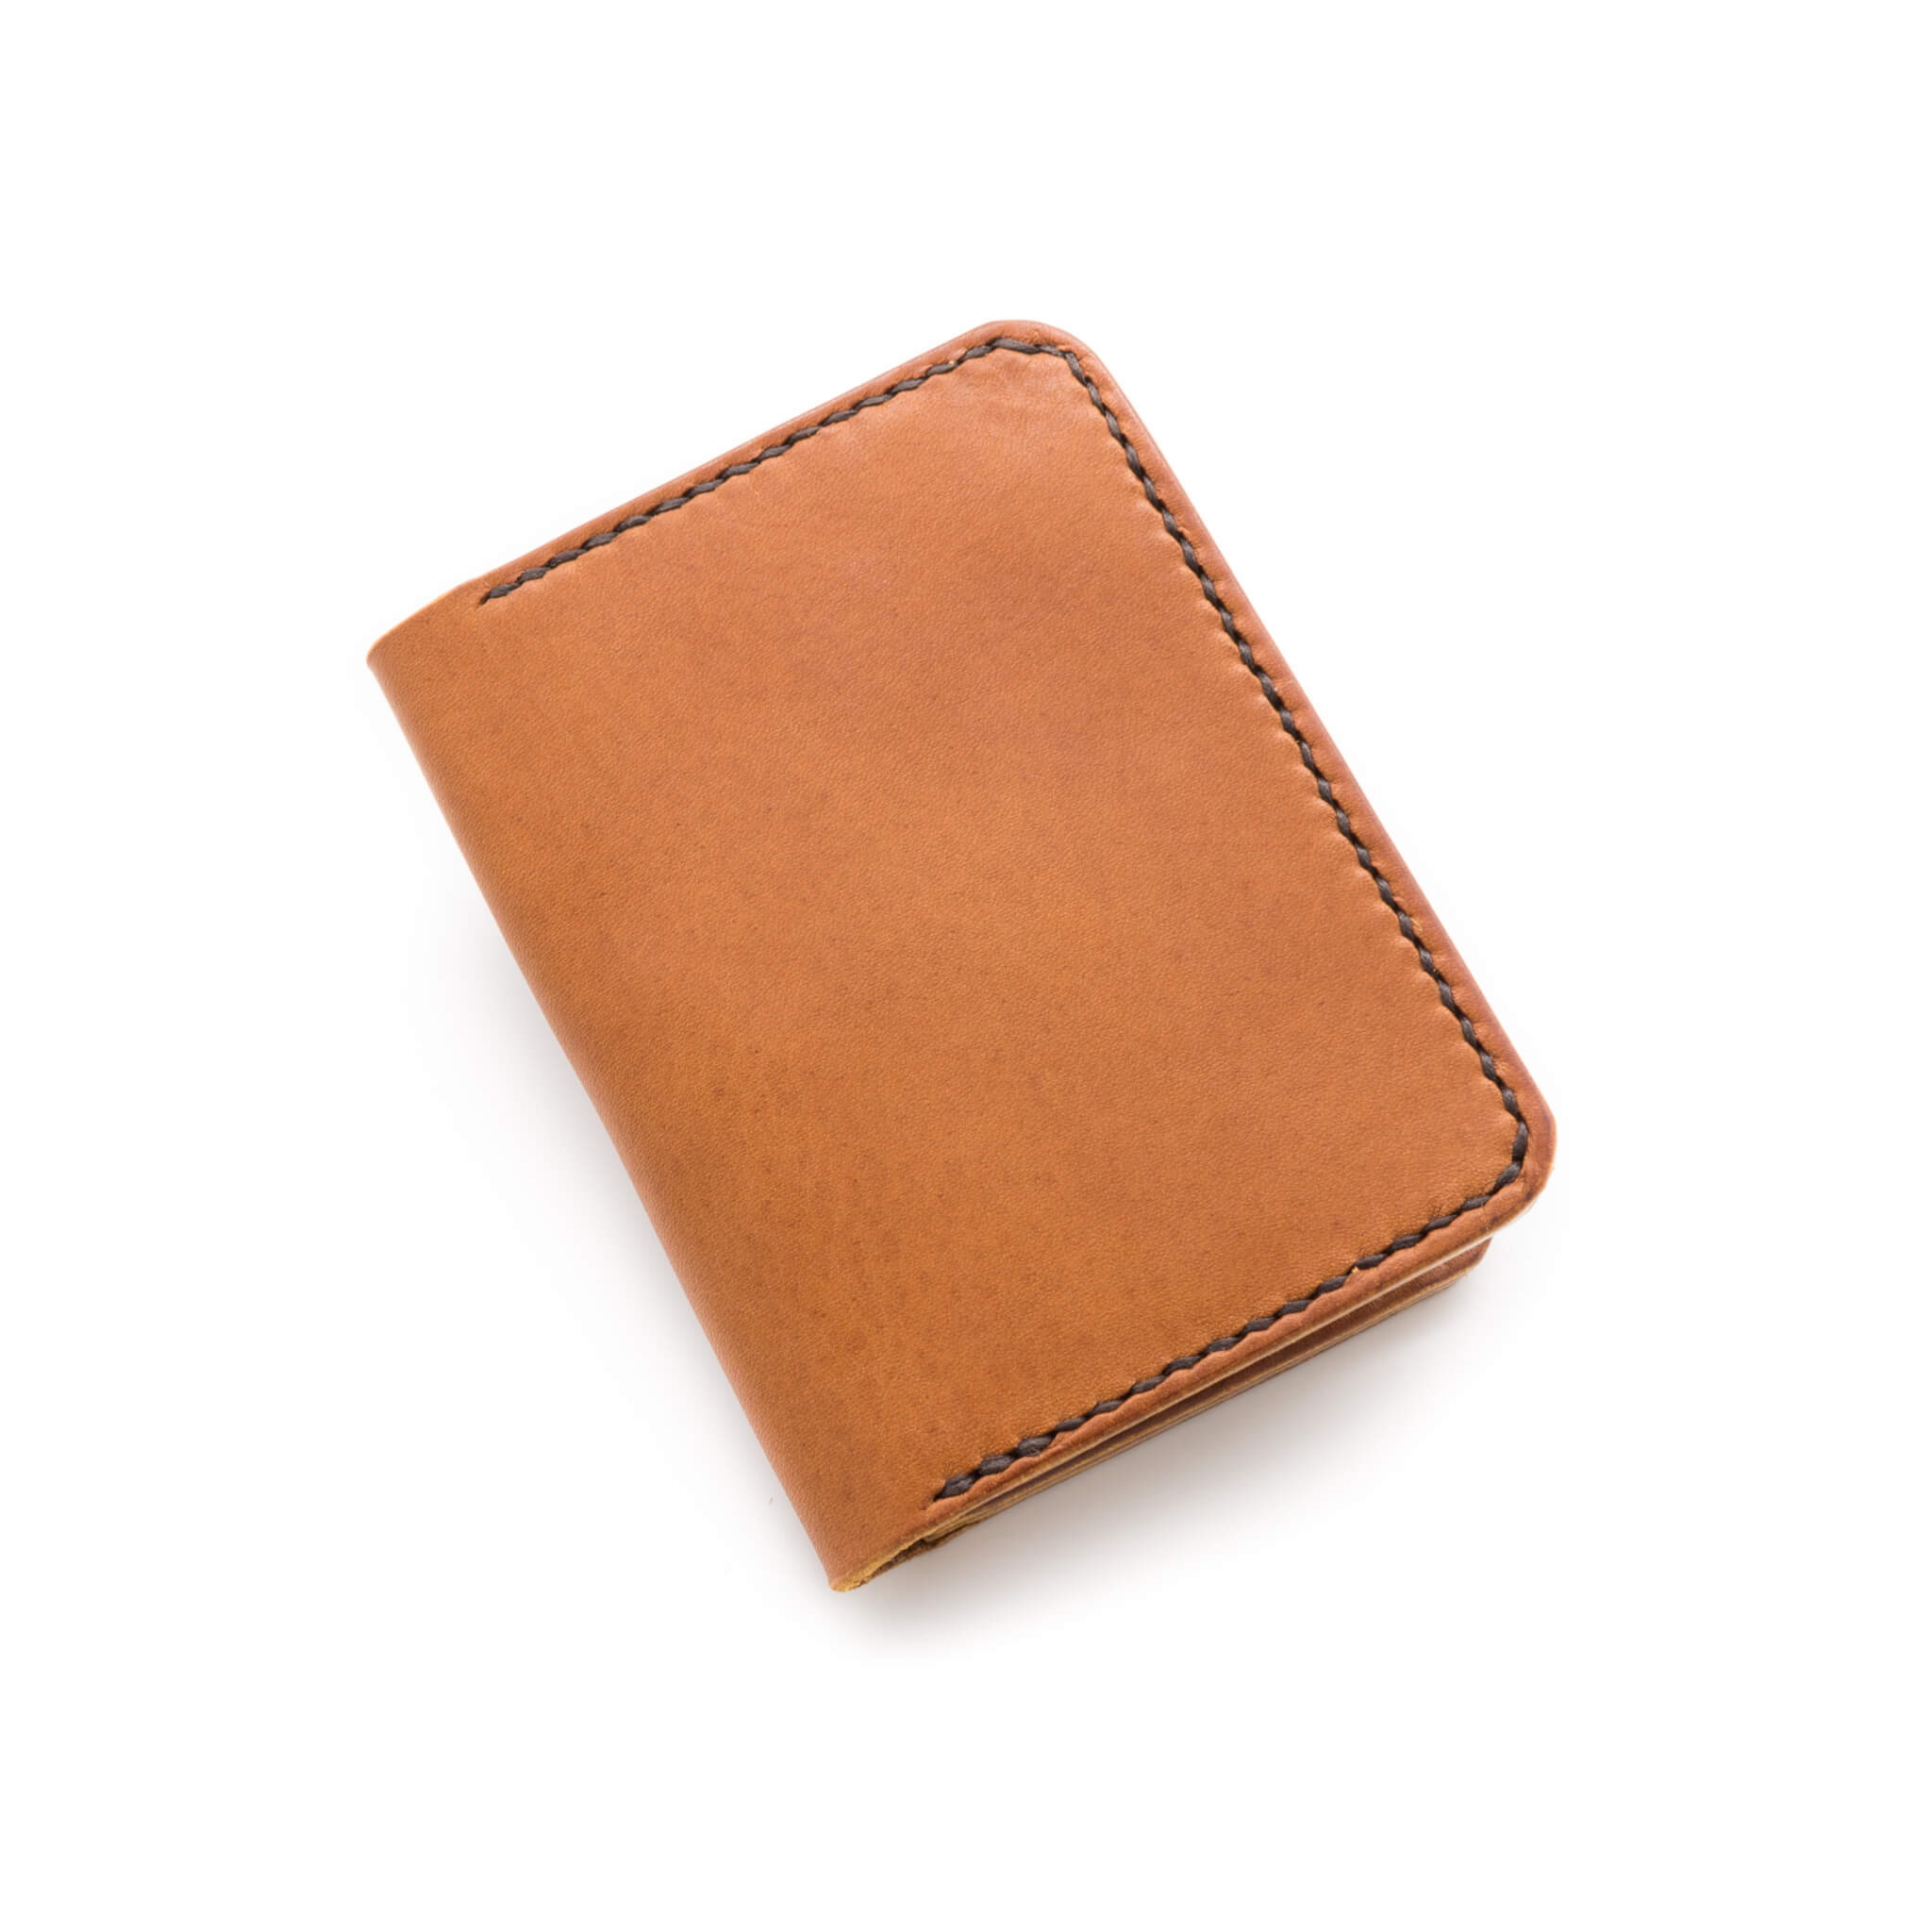 Hand made leather bifold wallet in Tan